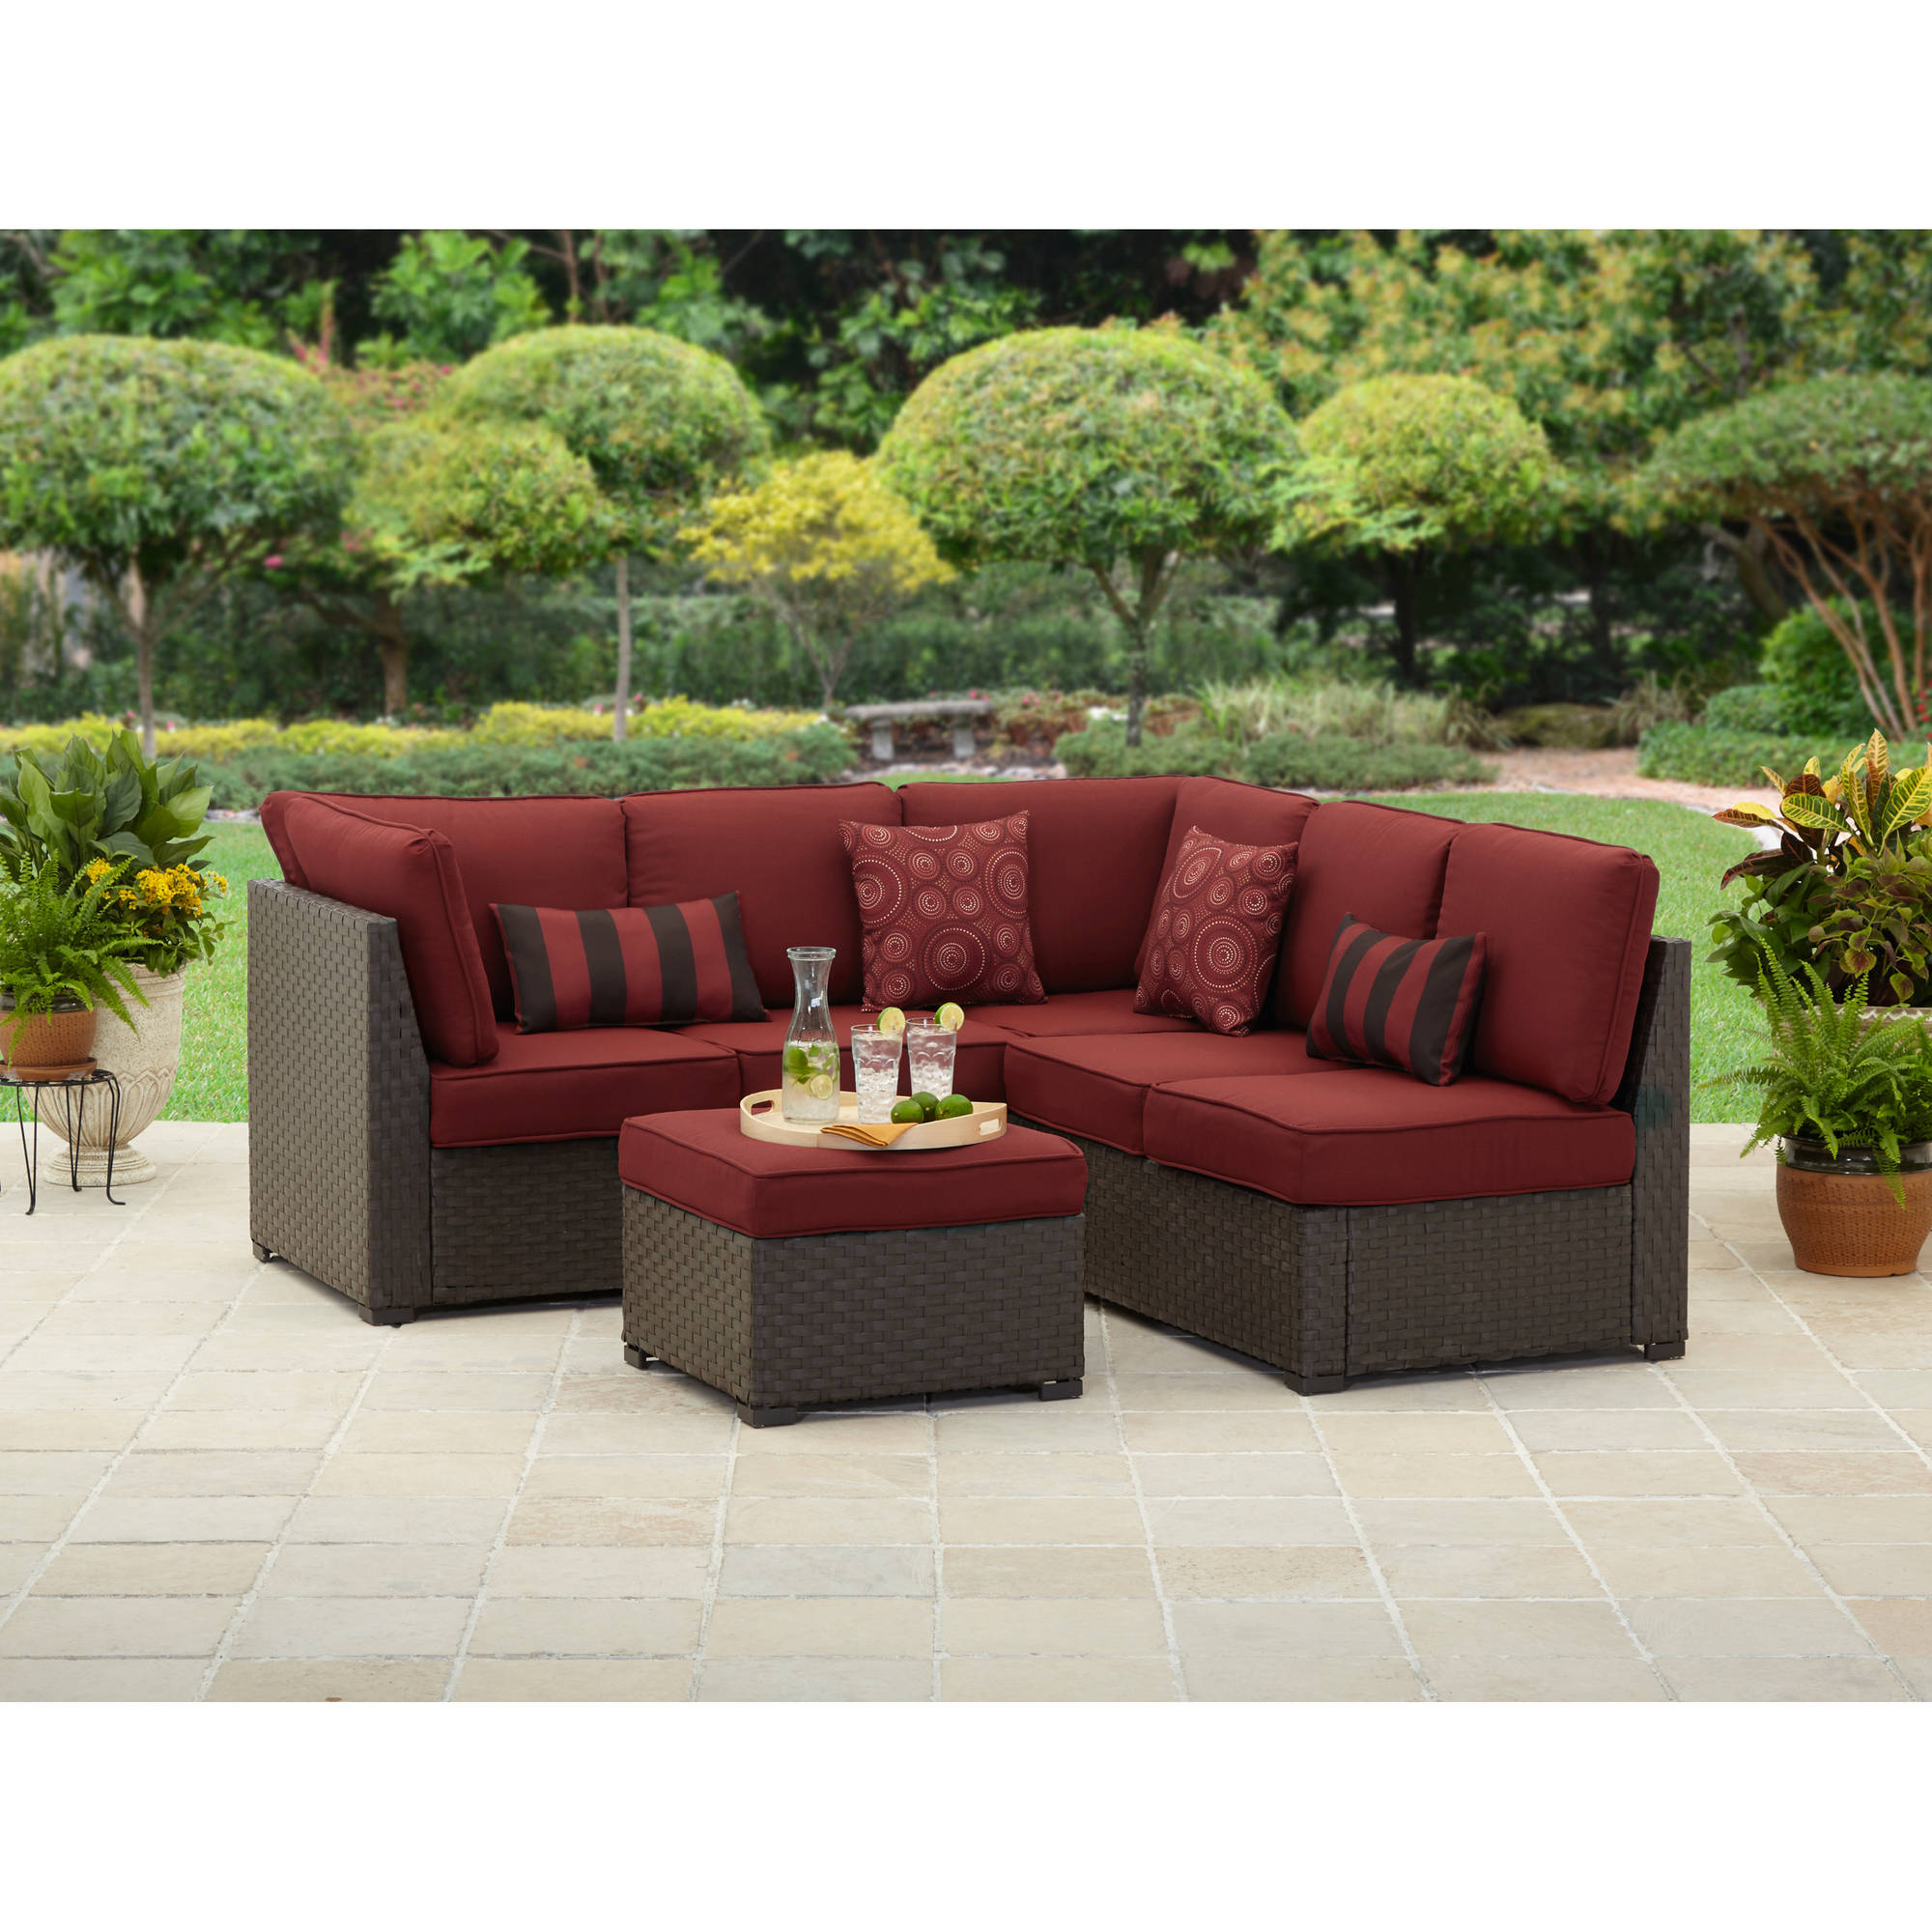 better homes and gardens rush valley 3-piece outdoor sectional sofa set,  seats JFVLFAN